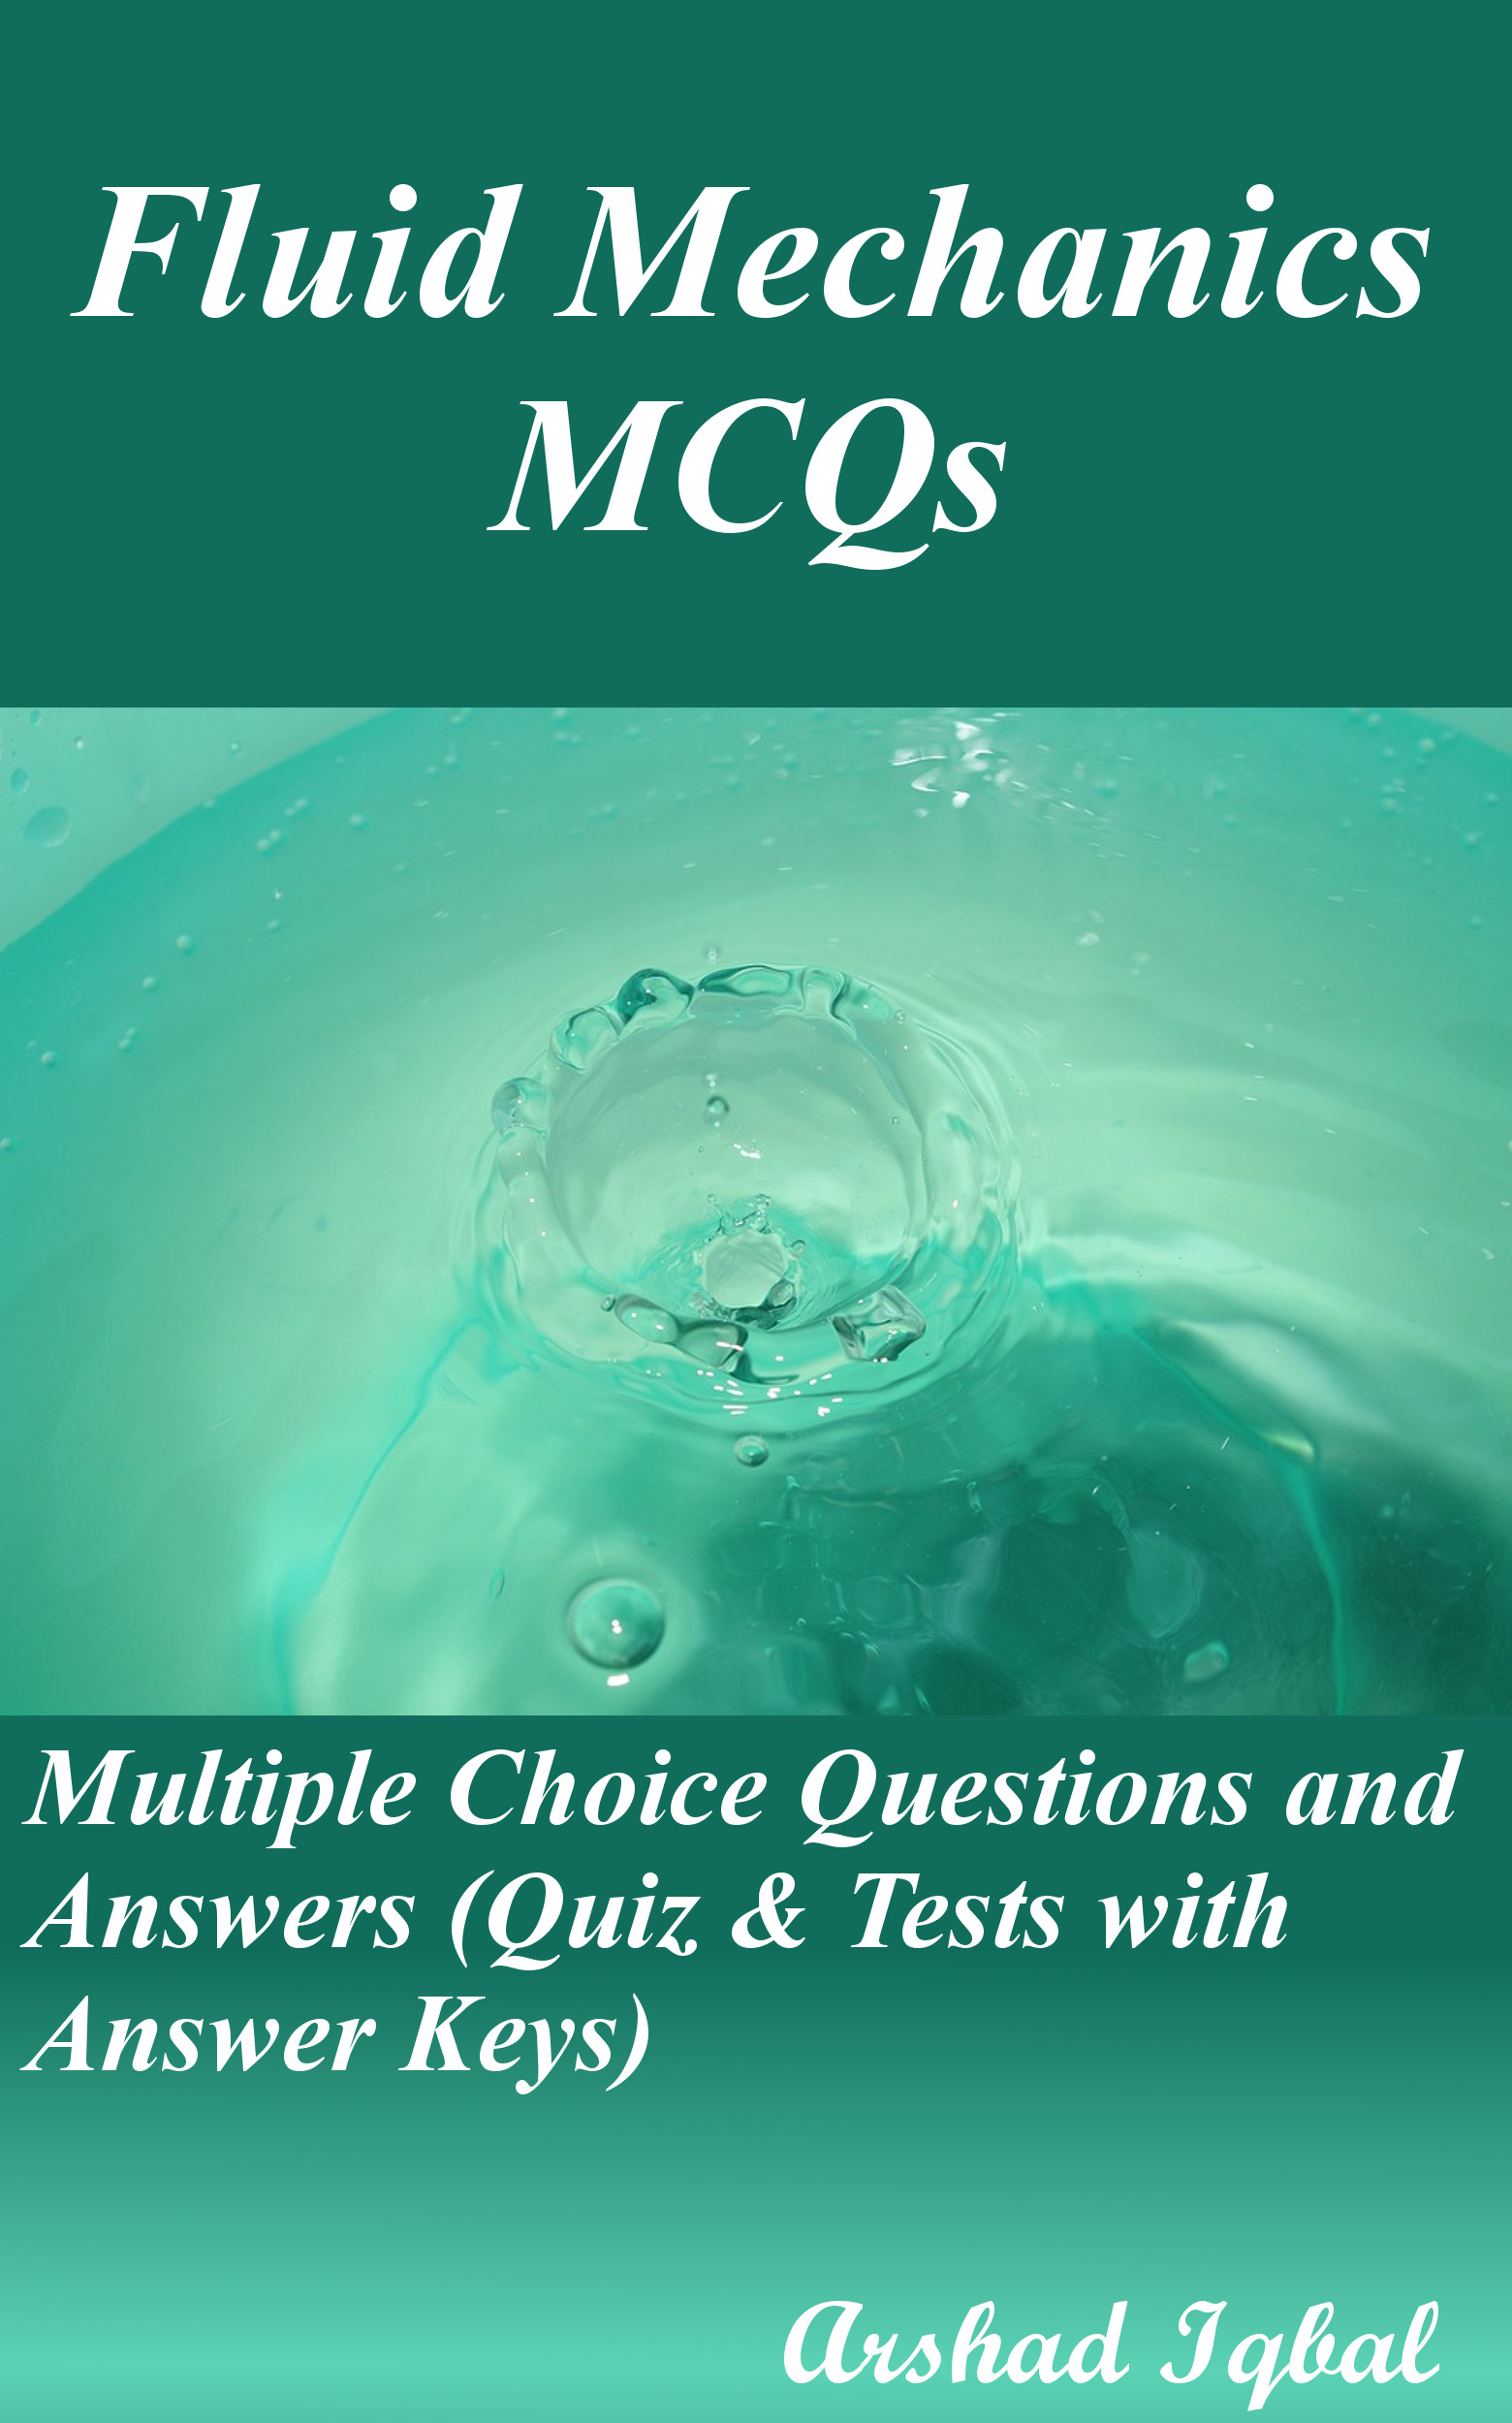 Fluid Mechanics Multiple Choice Questions and Answers (MCQs): Quizzes & Practice Tests with Answer Key